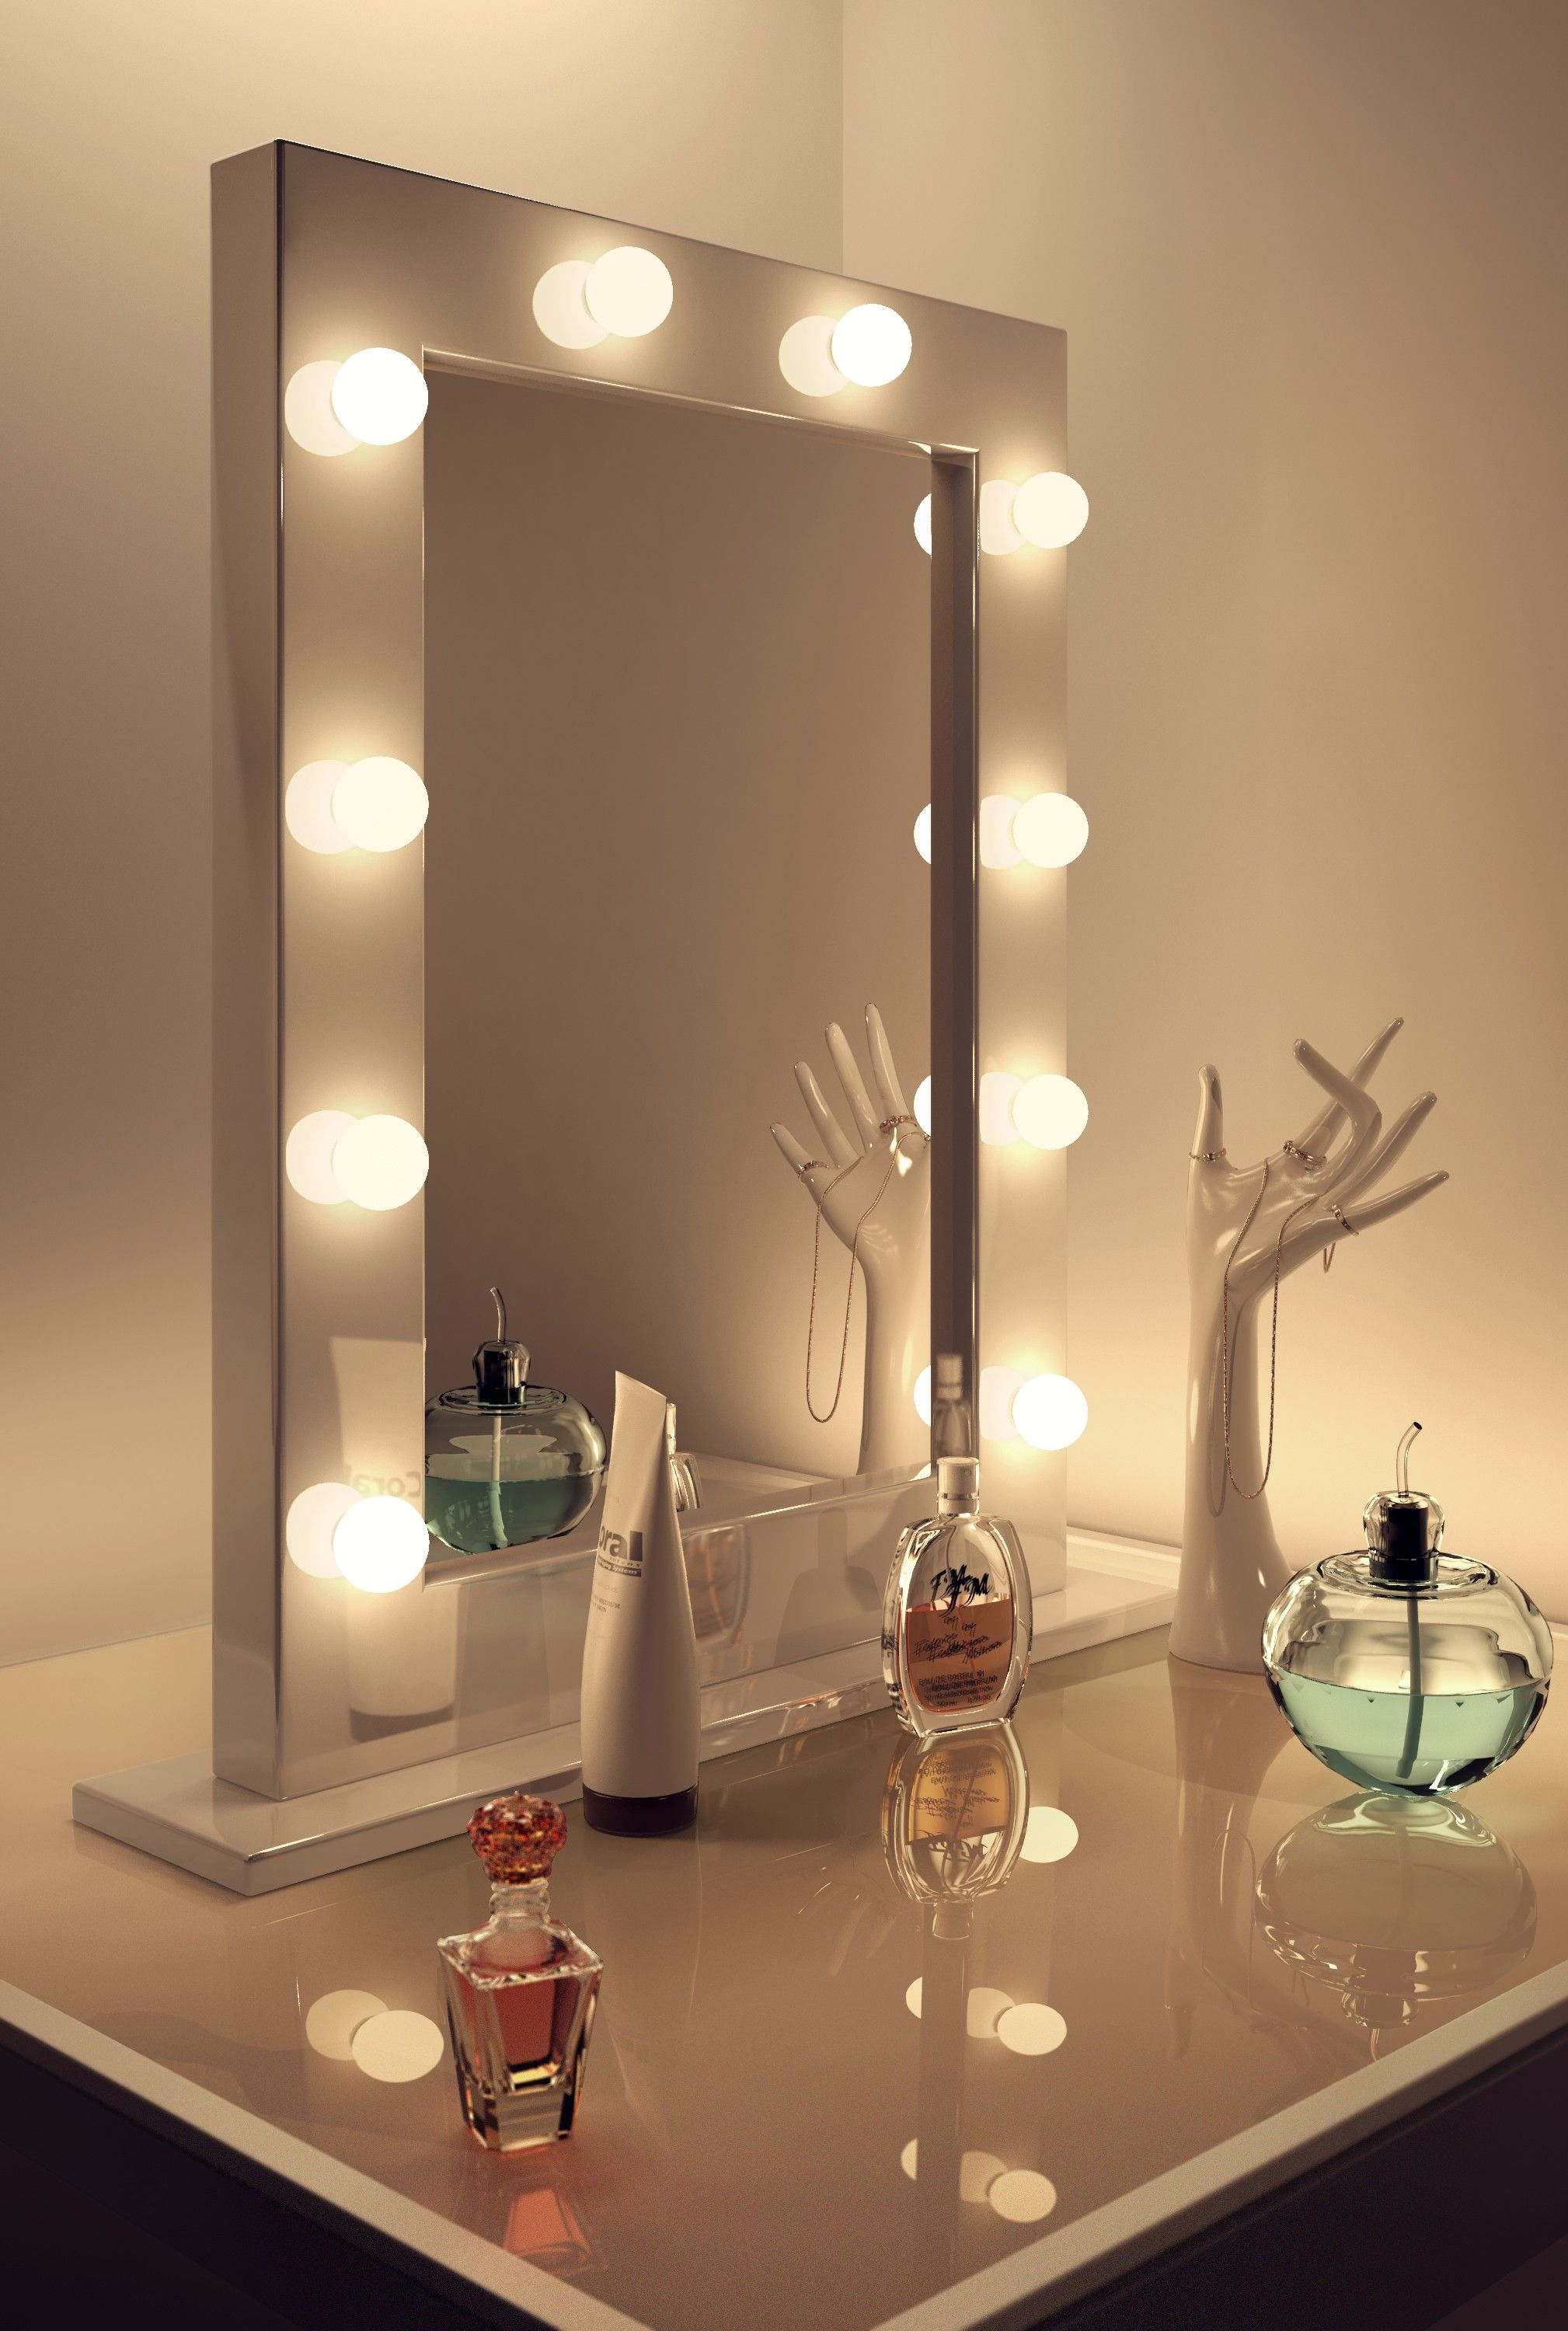 How To Make A Vanity Mirror With Lights Fascinating 17 Diy Vanity Mirror Ideas To Make Your Room More Beautiful